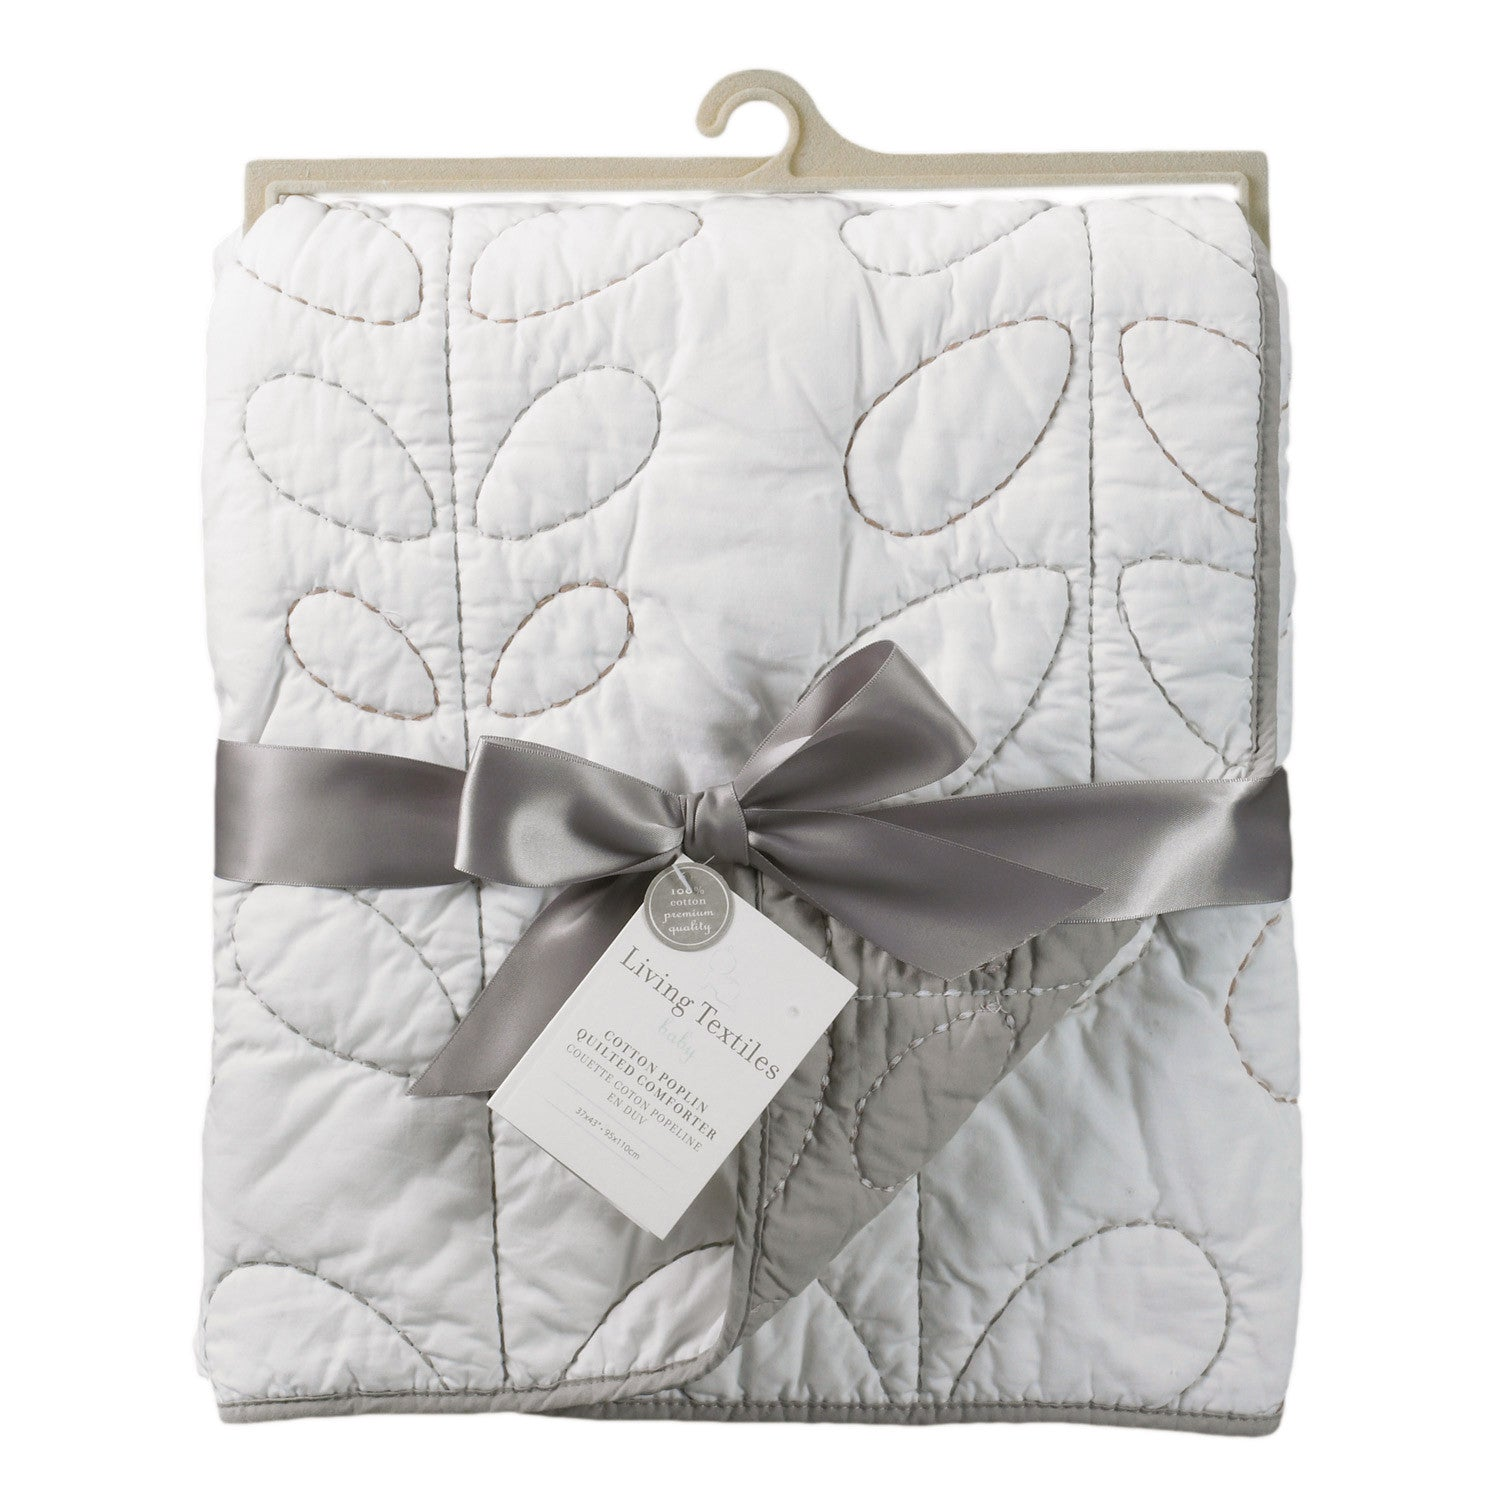 Baby Quilted Comforter - Cotton Poplin White/Grey – Living ... : white quilted comforter - Adamdwight.com